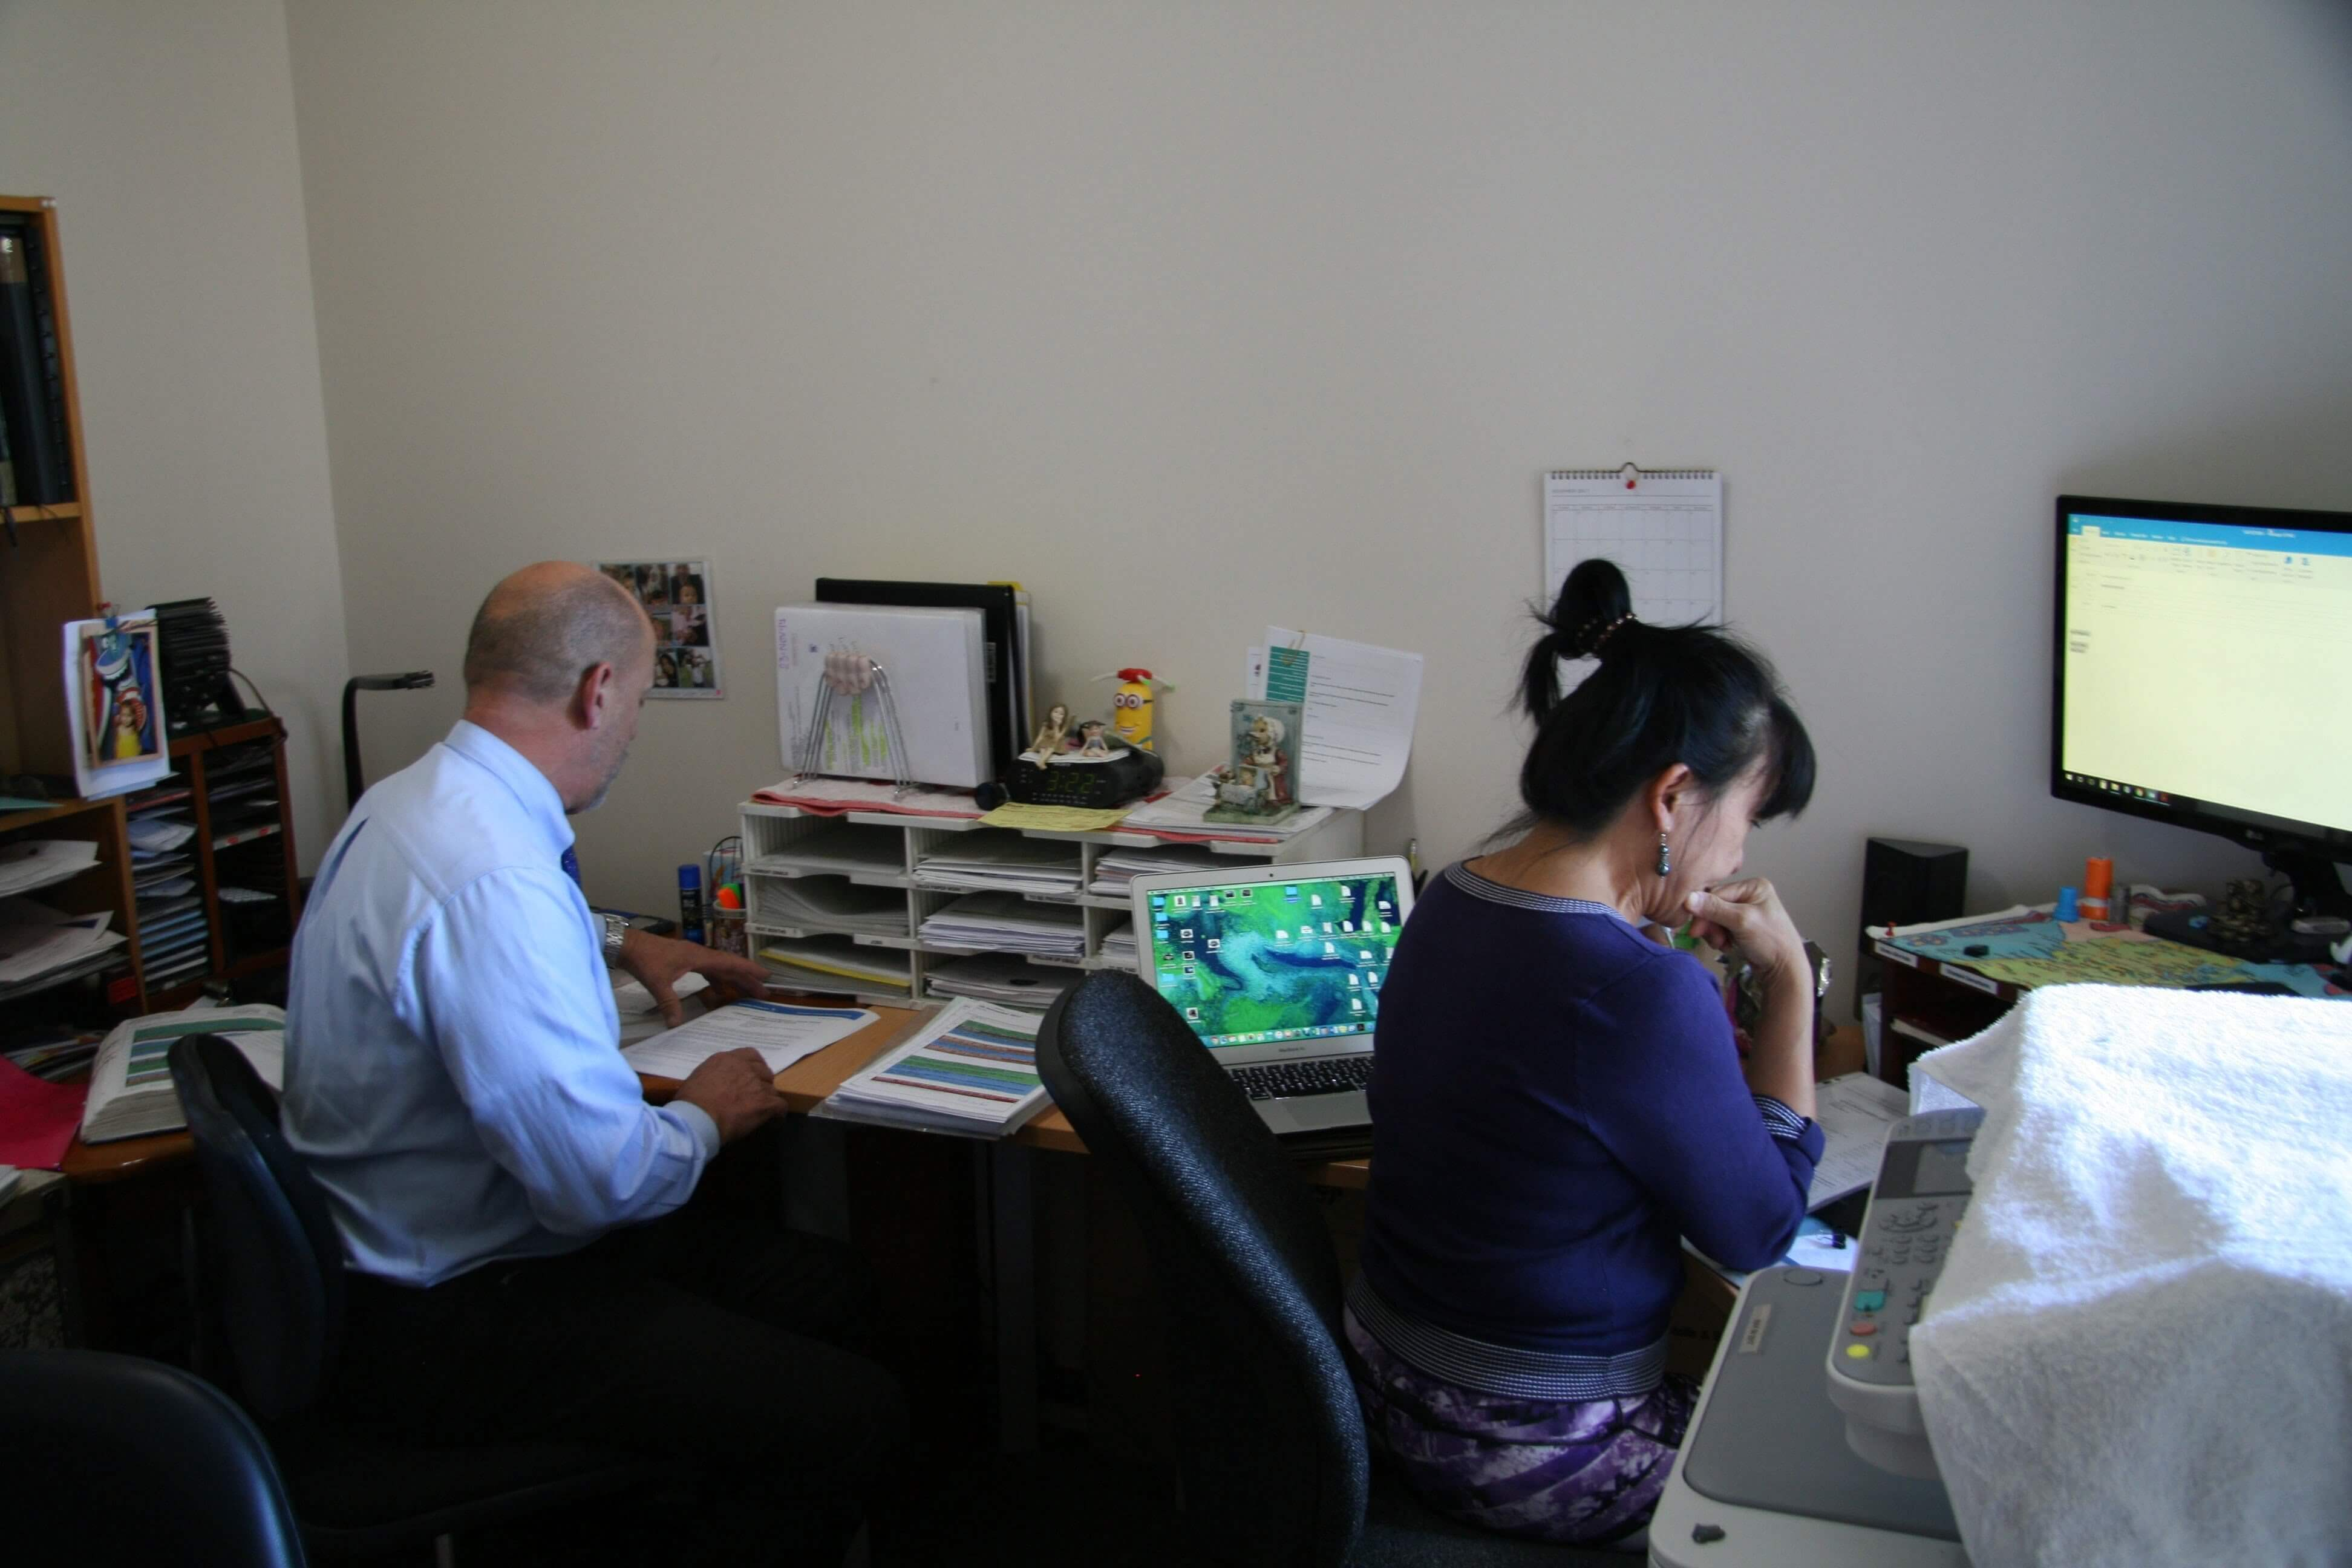 Kris Able and Visca Able working in their Sydney office